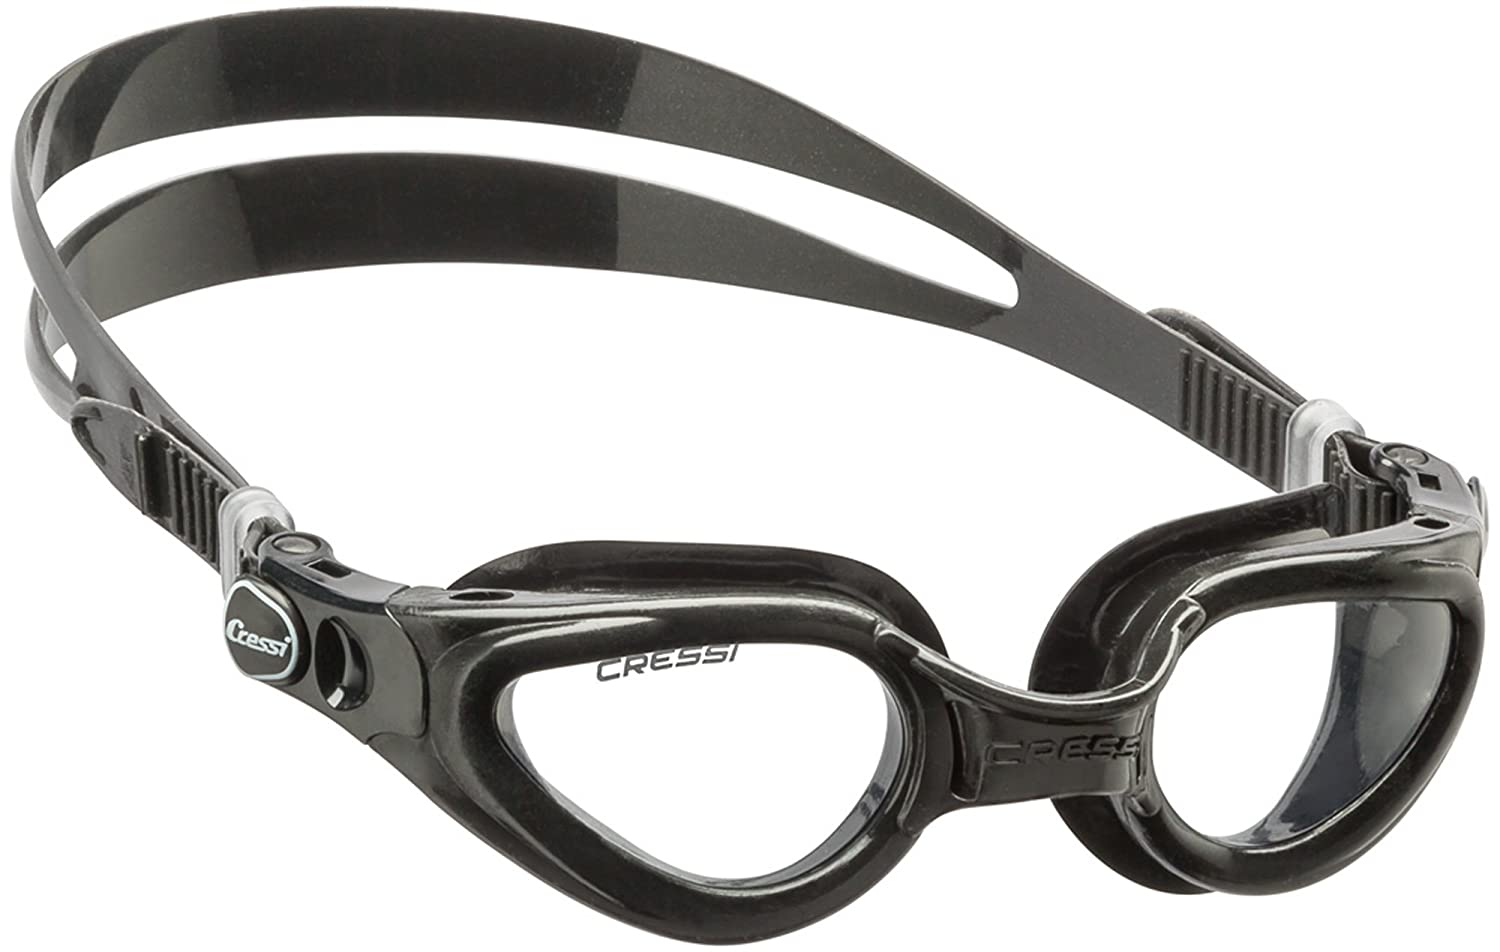 Cressi Adult Swimming Goggles with Flat Lenses for Natural Vision Right Made in Italy Black//Black DE201650